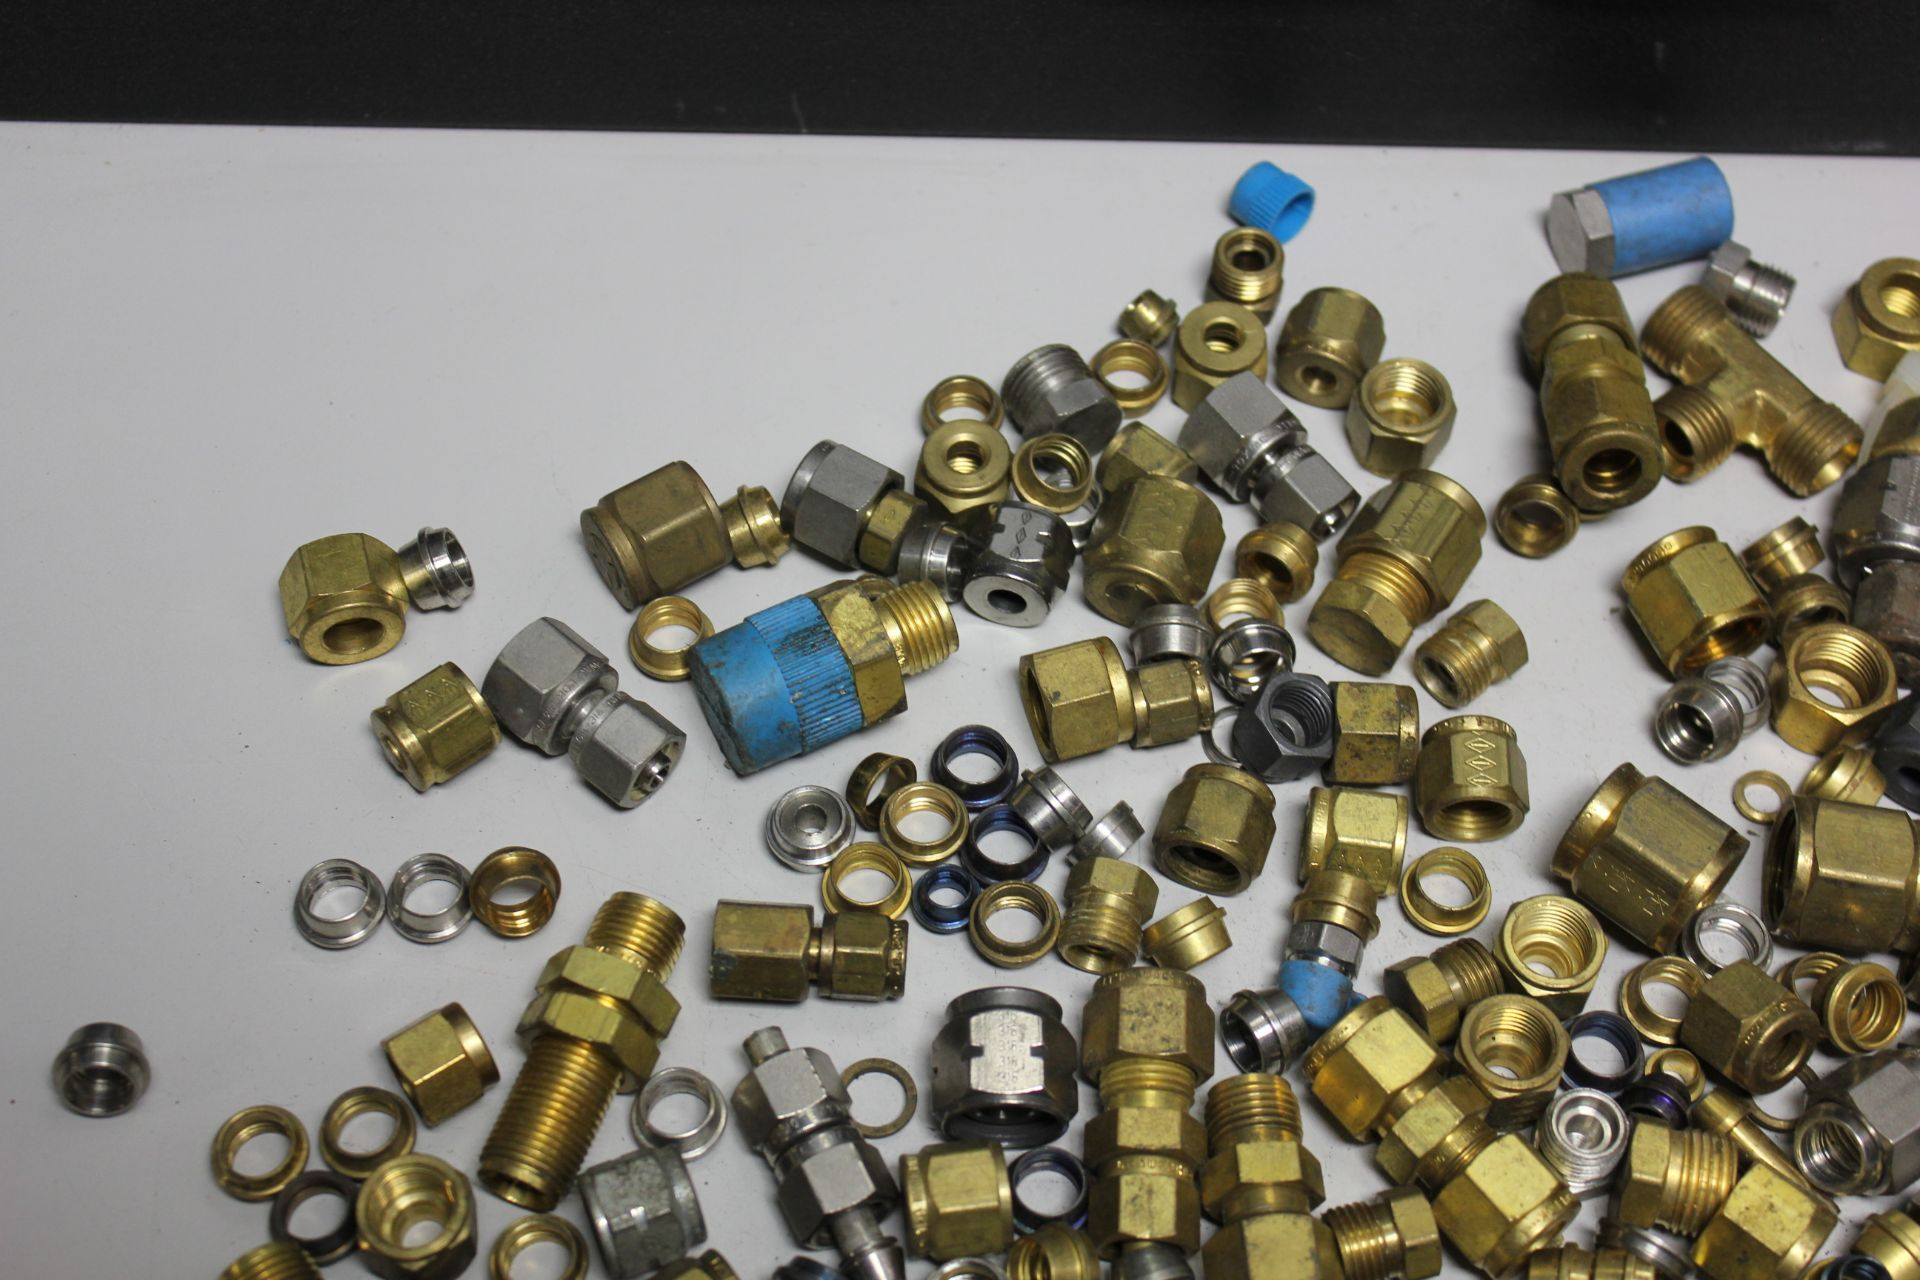 LOT OF COMPRESSION FITTINGS - SWAGELOK, CAJON, ETC - Image 2 of 8